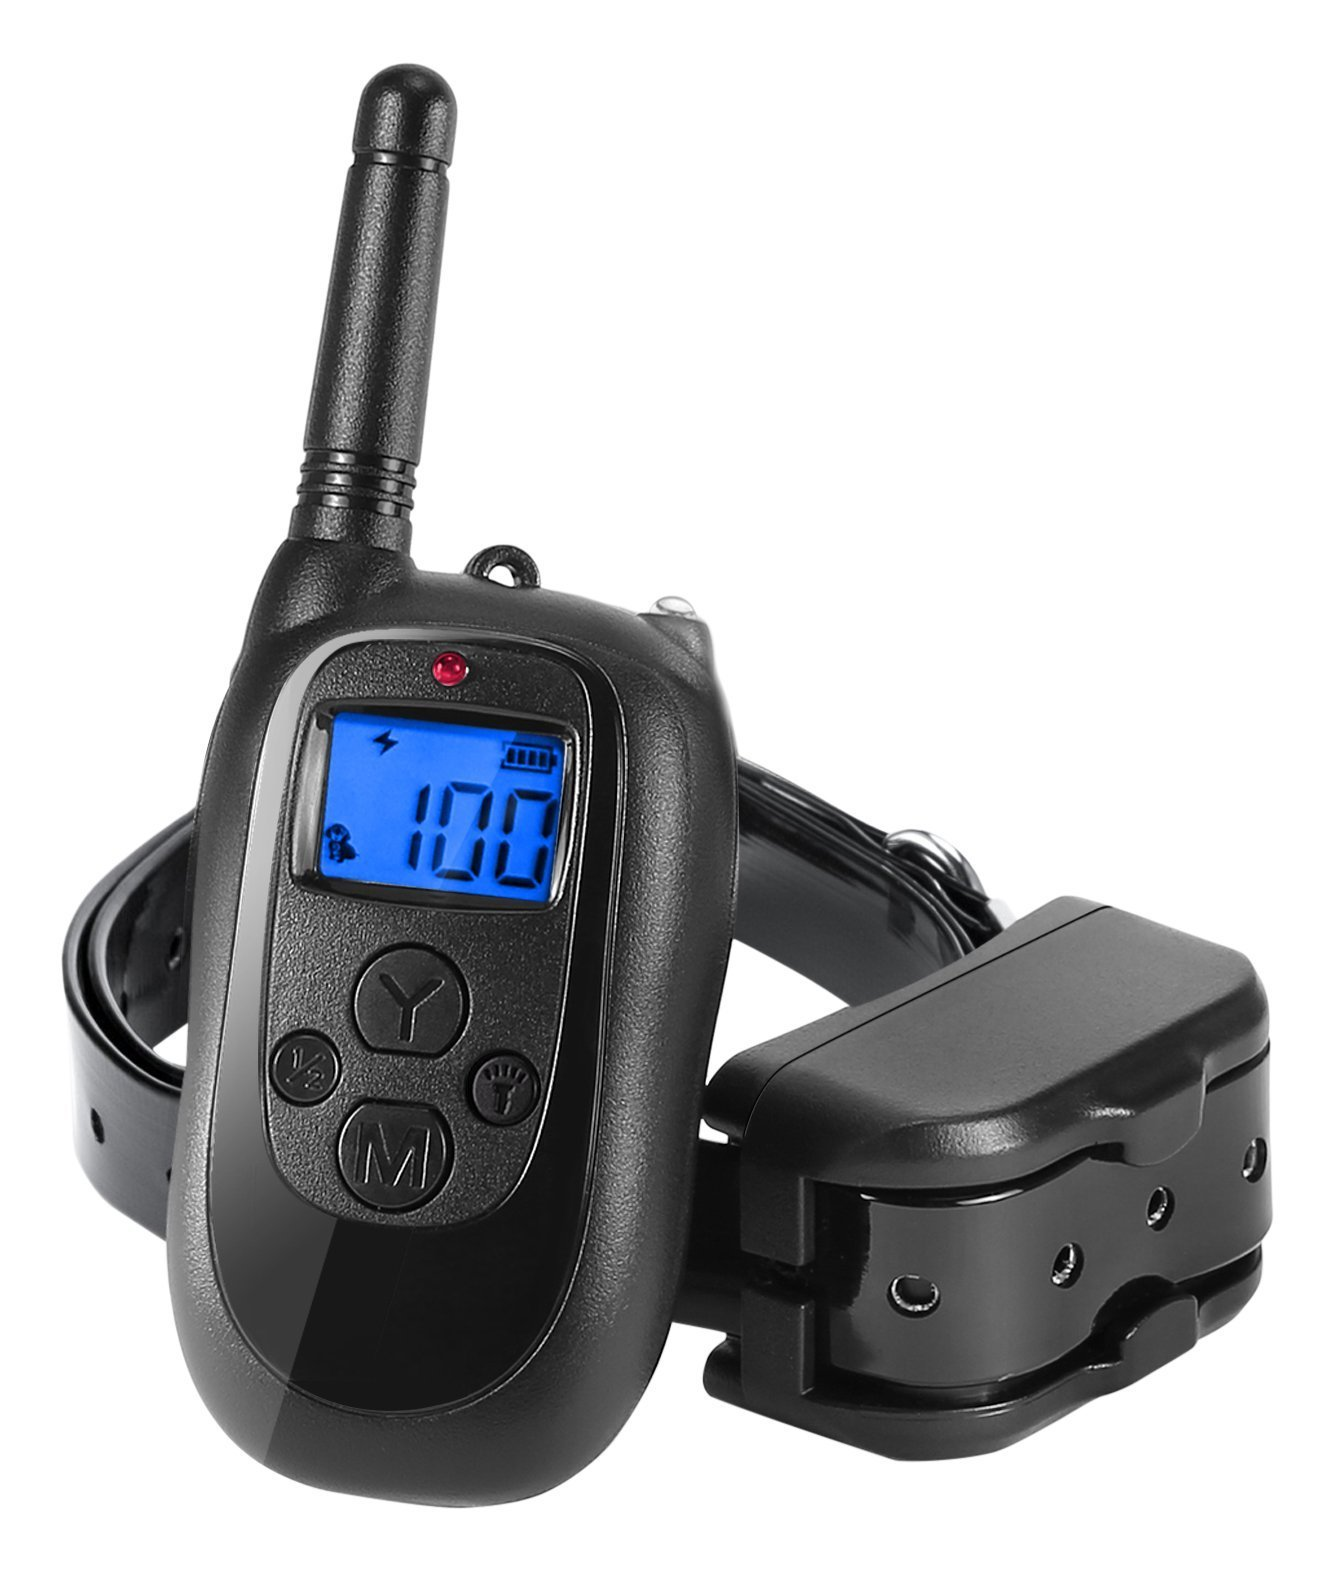 ALTMAN Dog Shock Collar 1000ft Remote Training, Rechargeable and IPX 7 Waterproof with Beep/Vibration/Shock Electric Collar for All Size Dogs by Nemobub